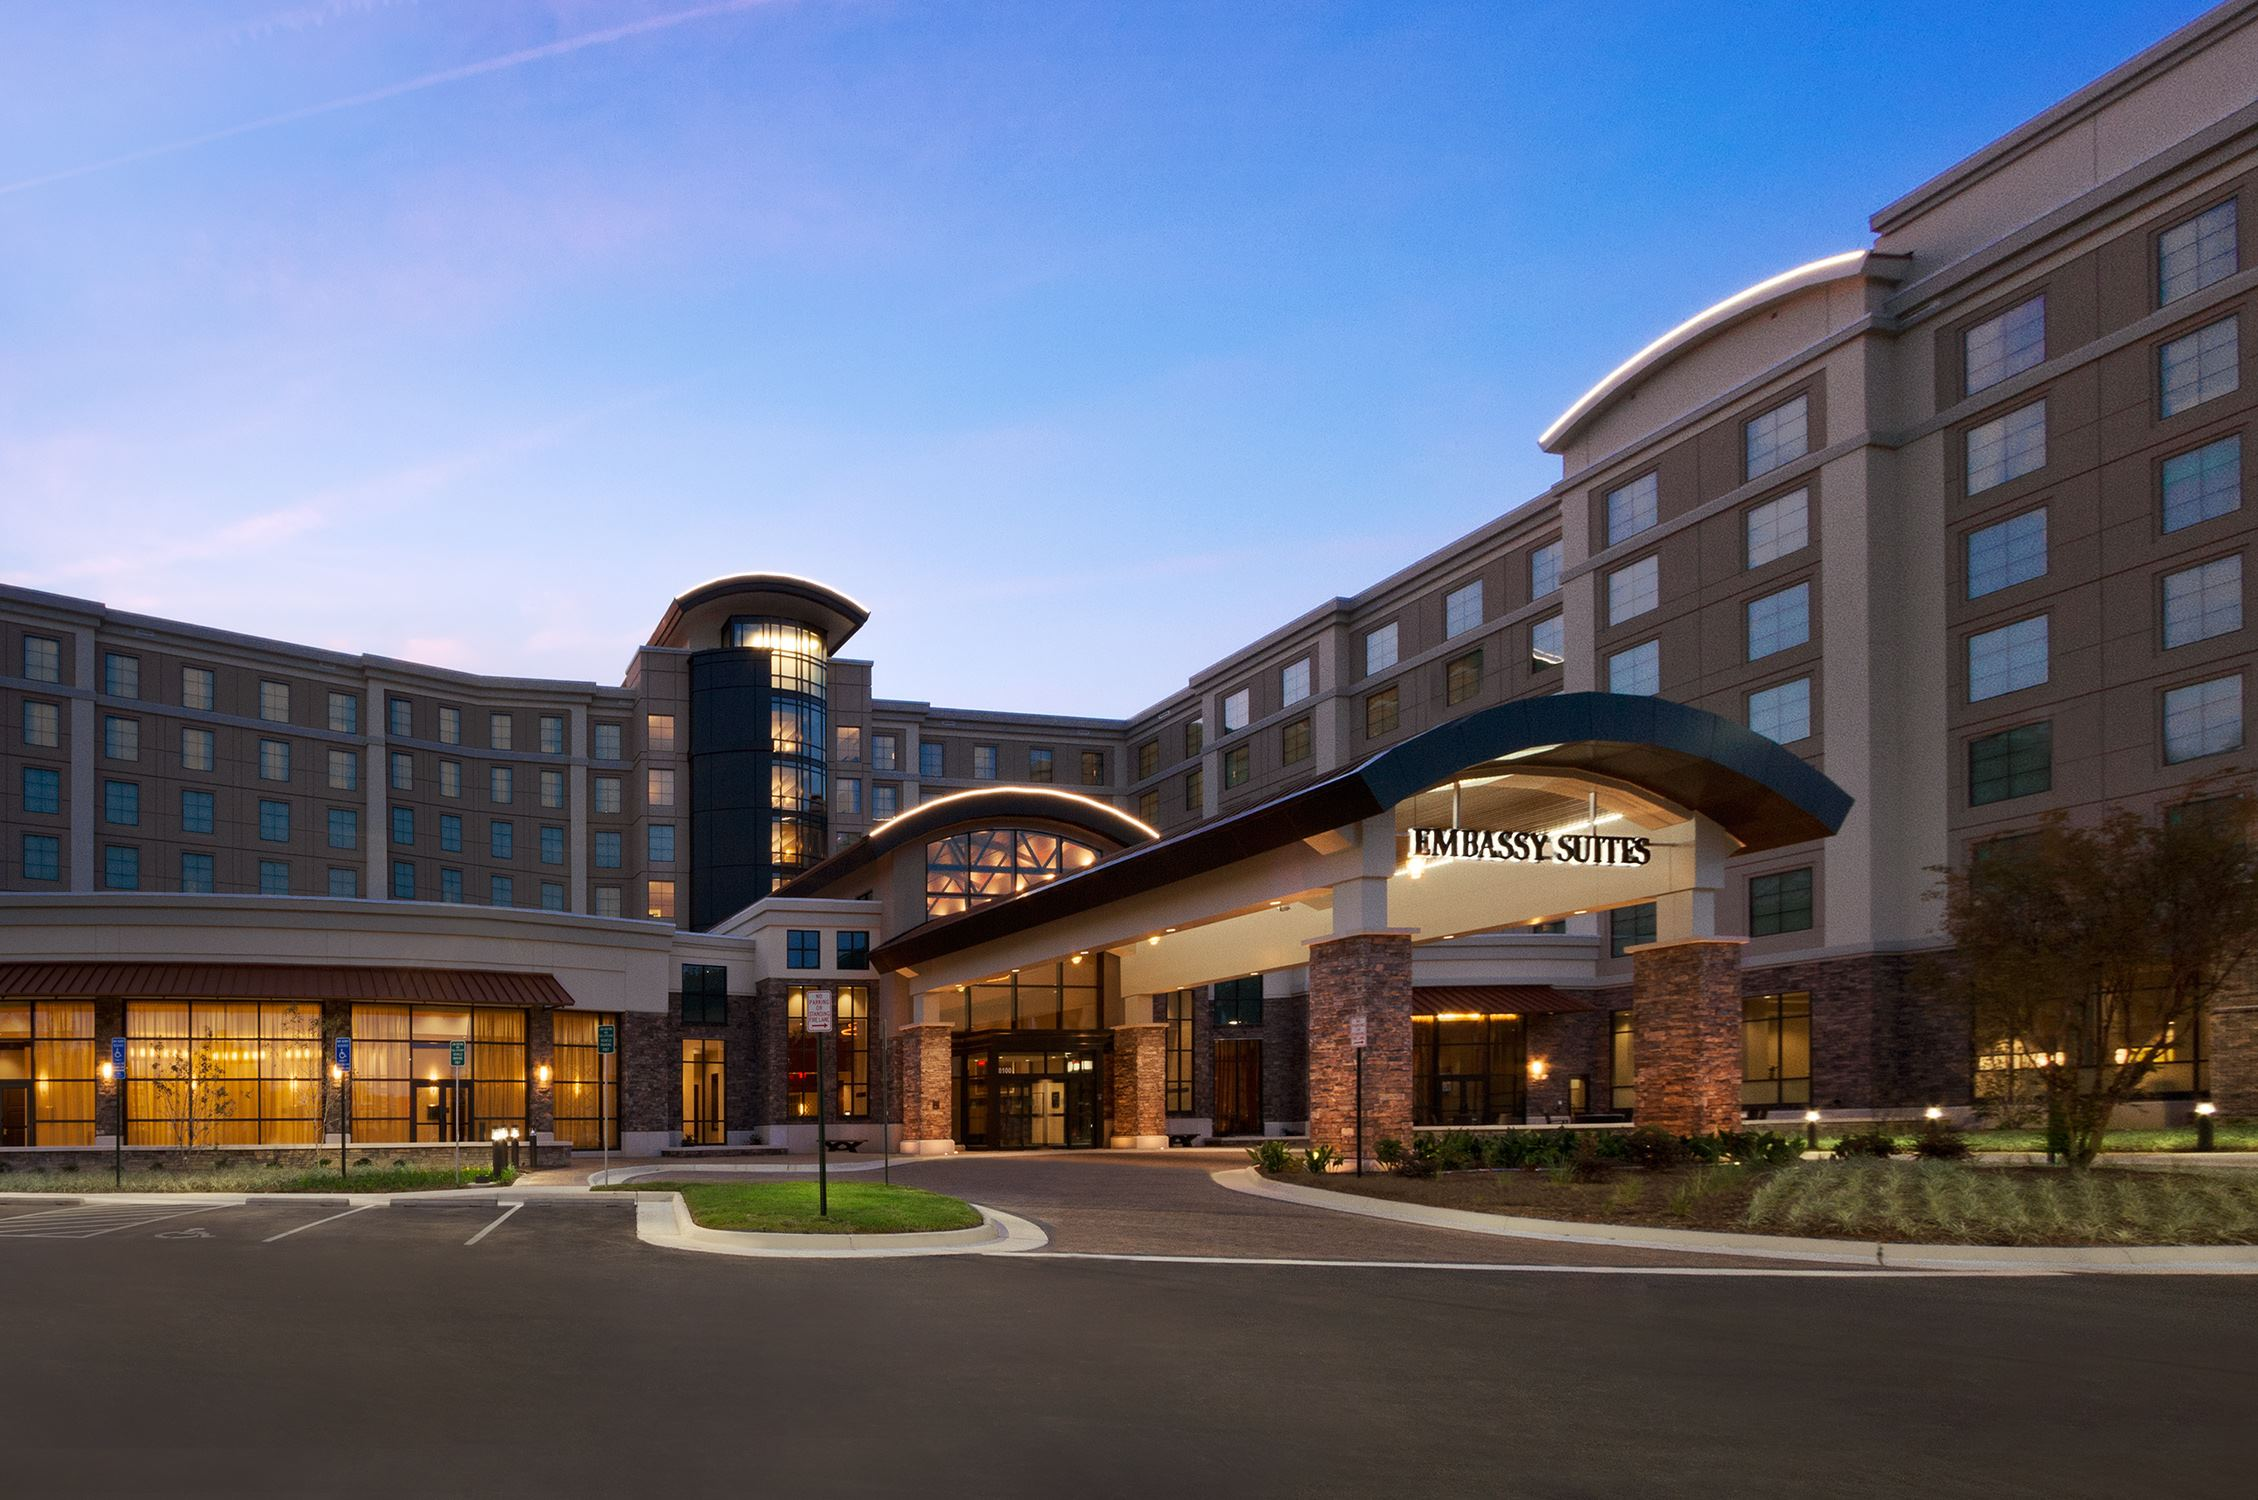 Embassy Suites Springfield - 1